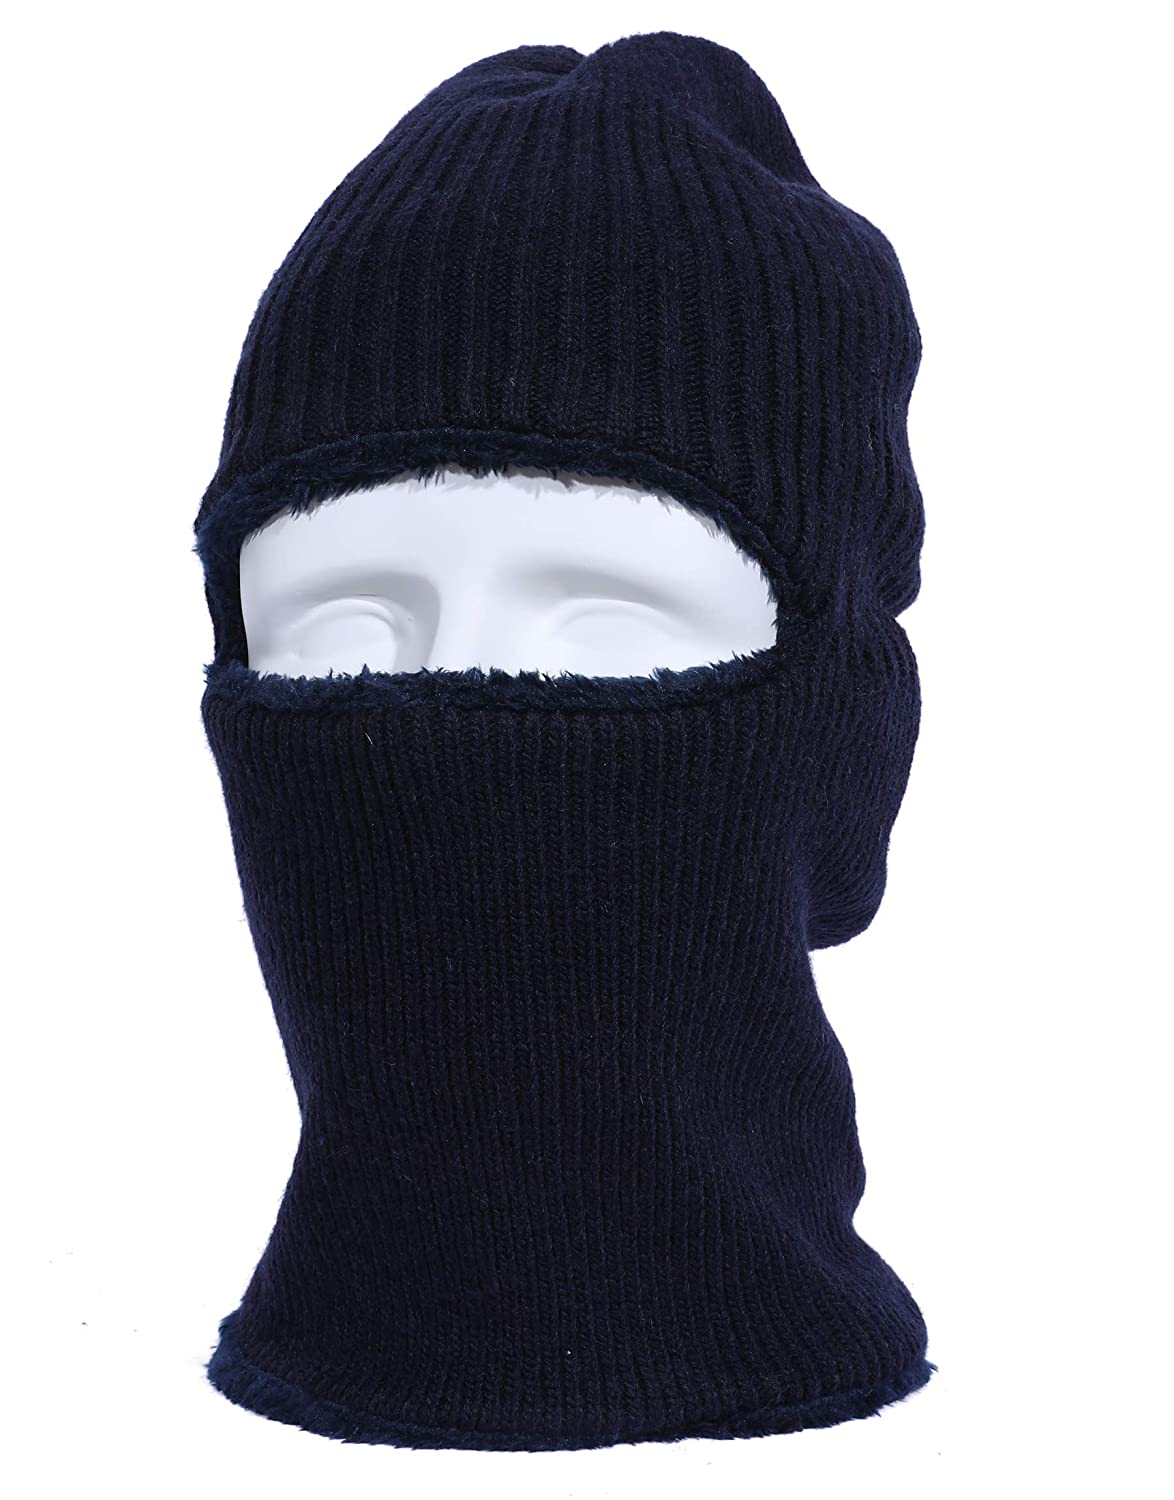 Outrip Mens Balaclava Winter Face Mask Cold Weather Windproof Warm Unisex Ski Mask